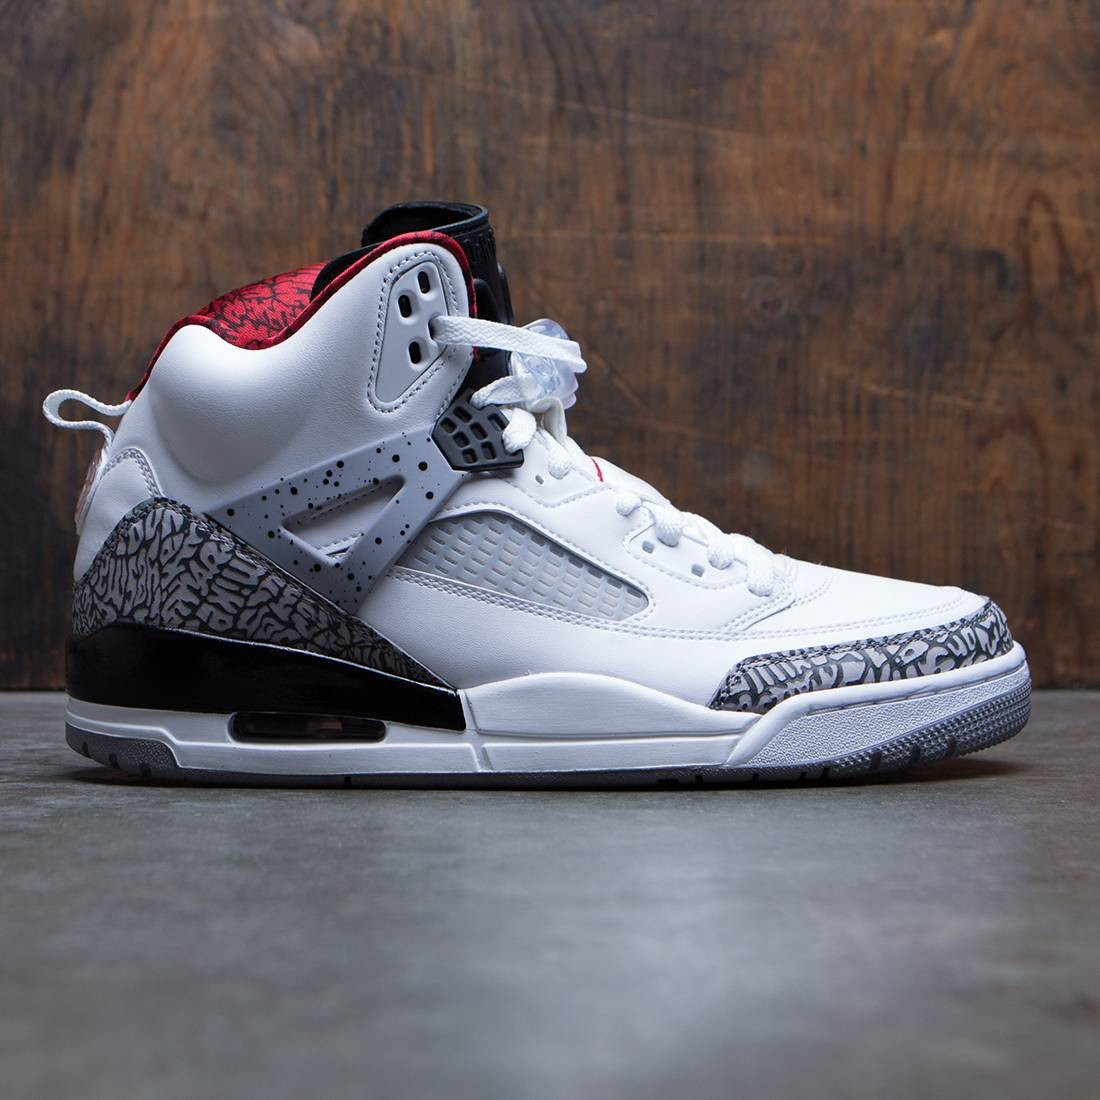 new product 43b42 f87c8 jordan men jordan spizike white varsity red cement grey black